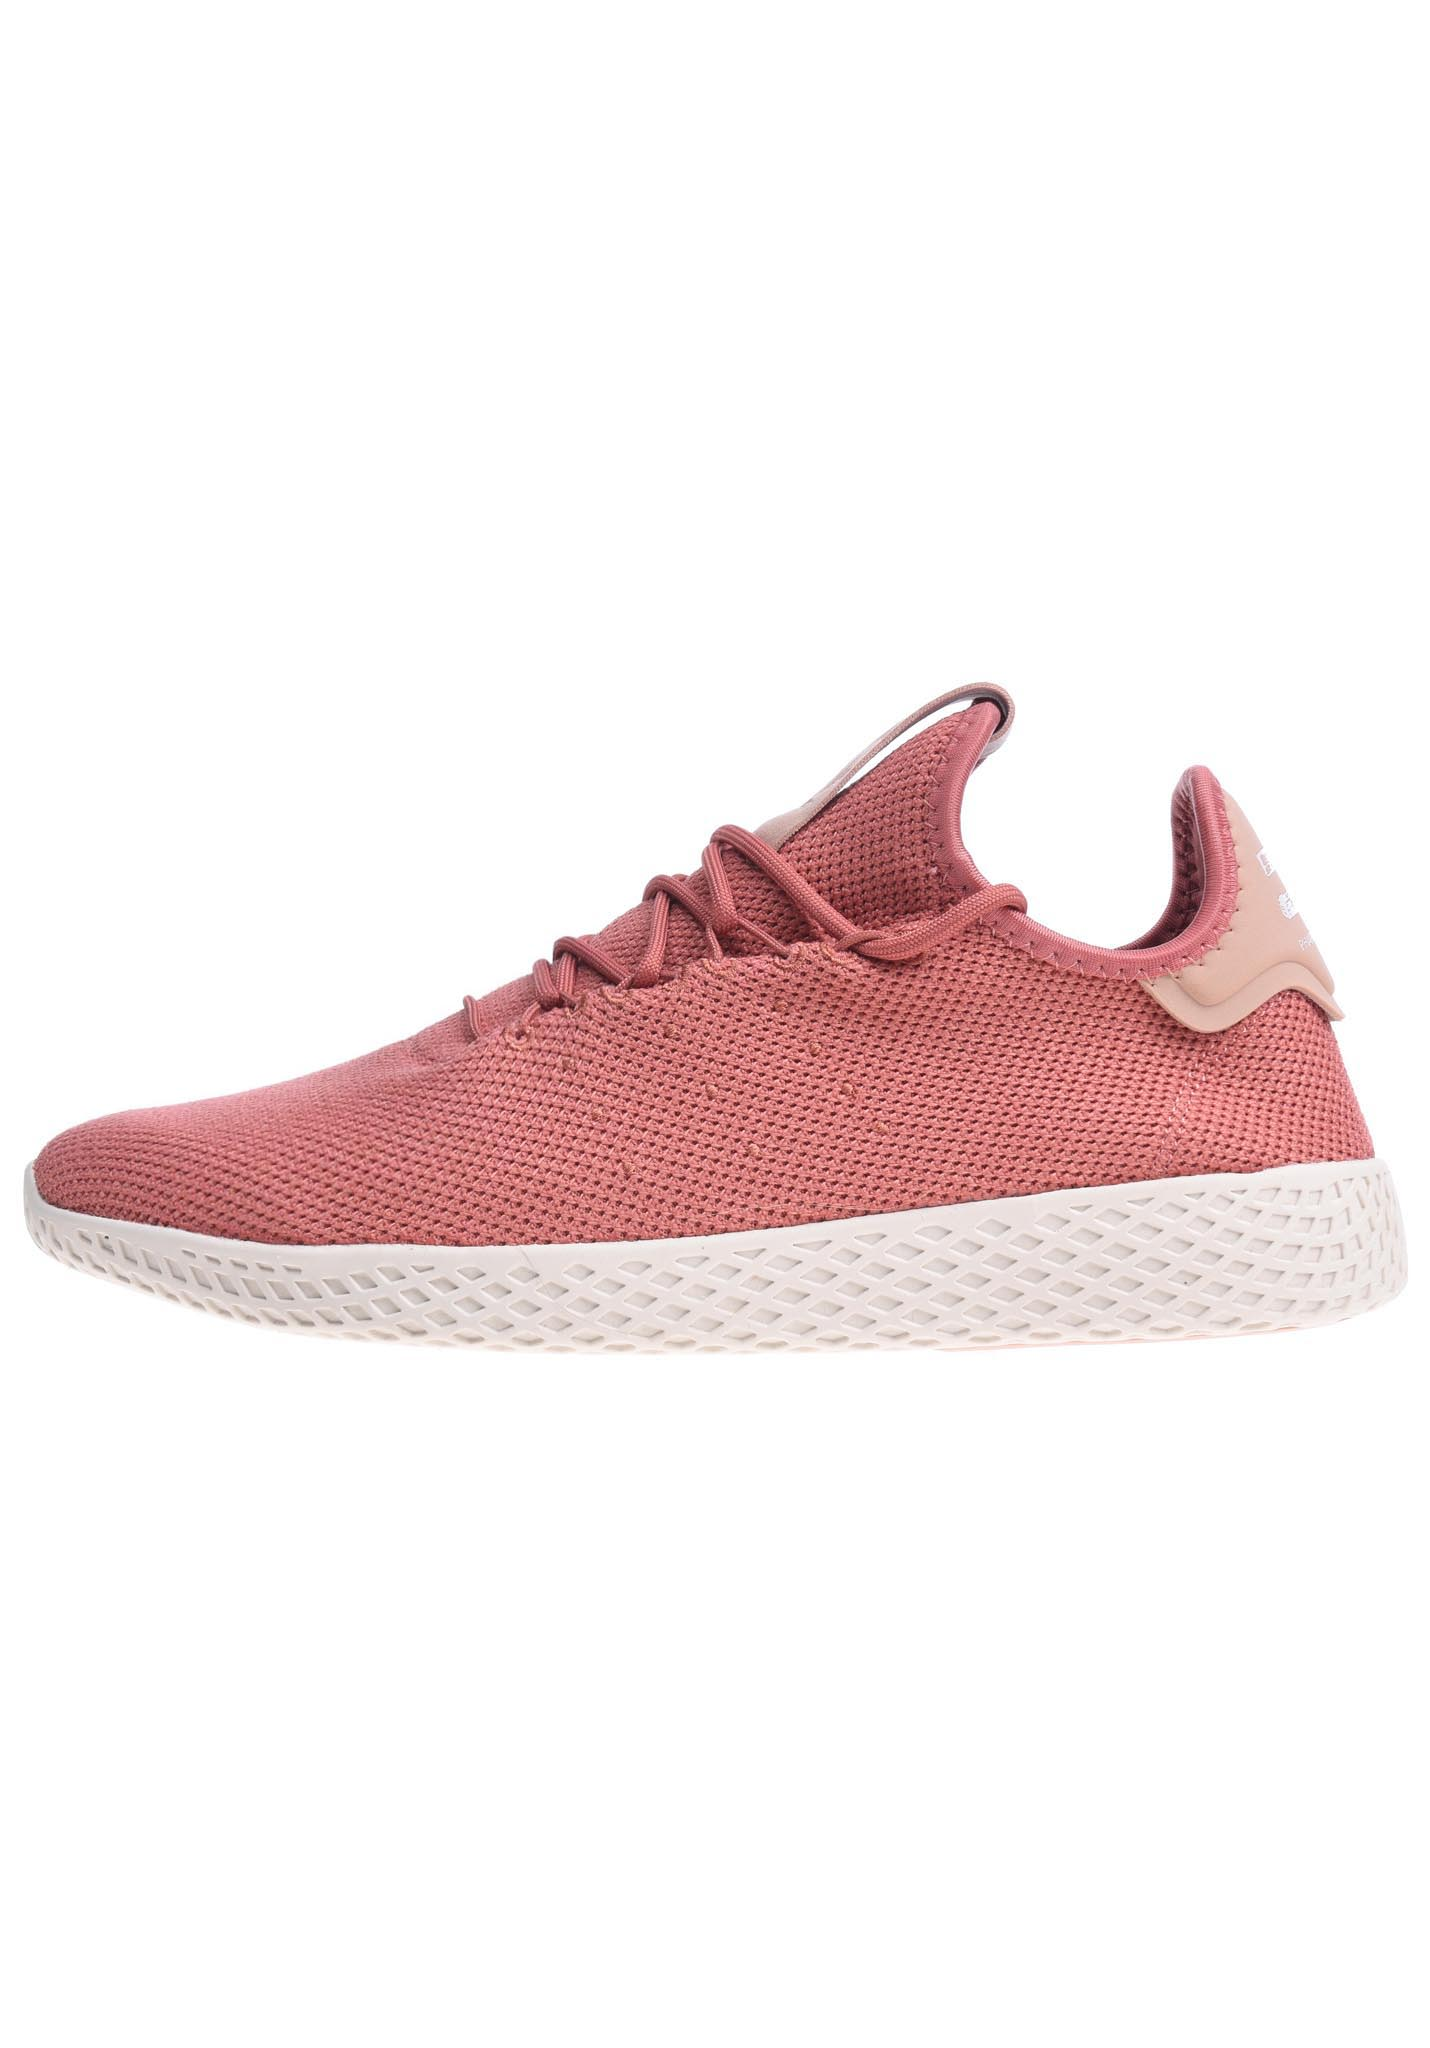 abd3fd8fb76 Adidas Hu Damen Williams Tennis Pharrell Sneaker Originals Für 08Nwmn